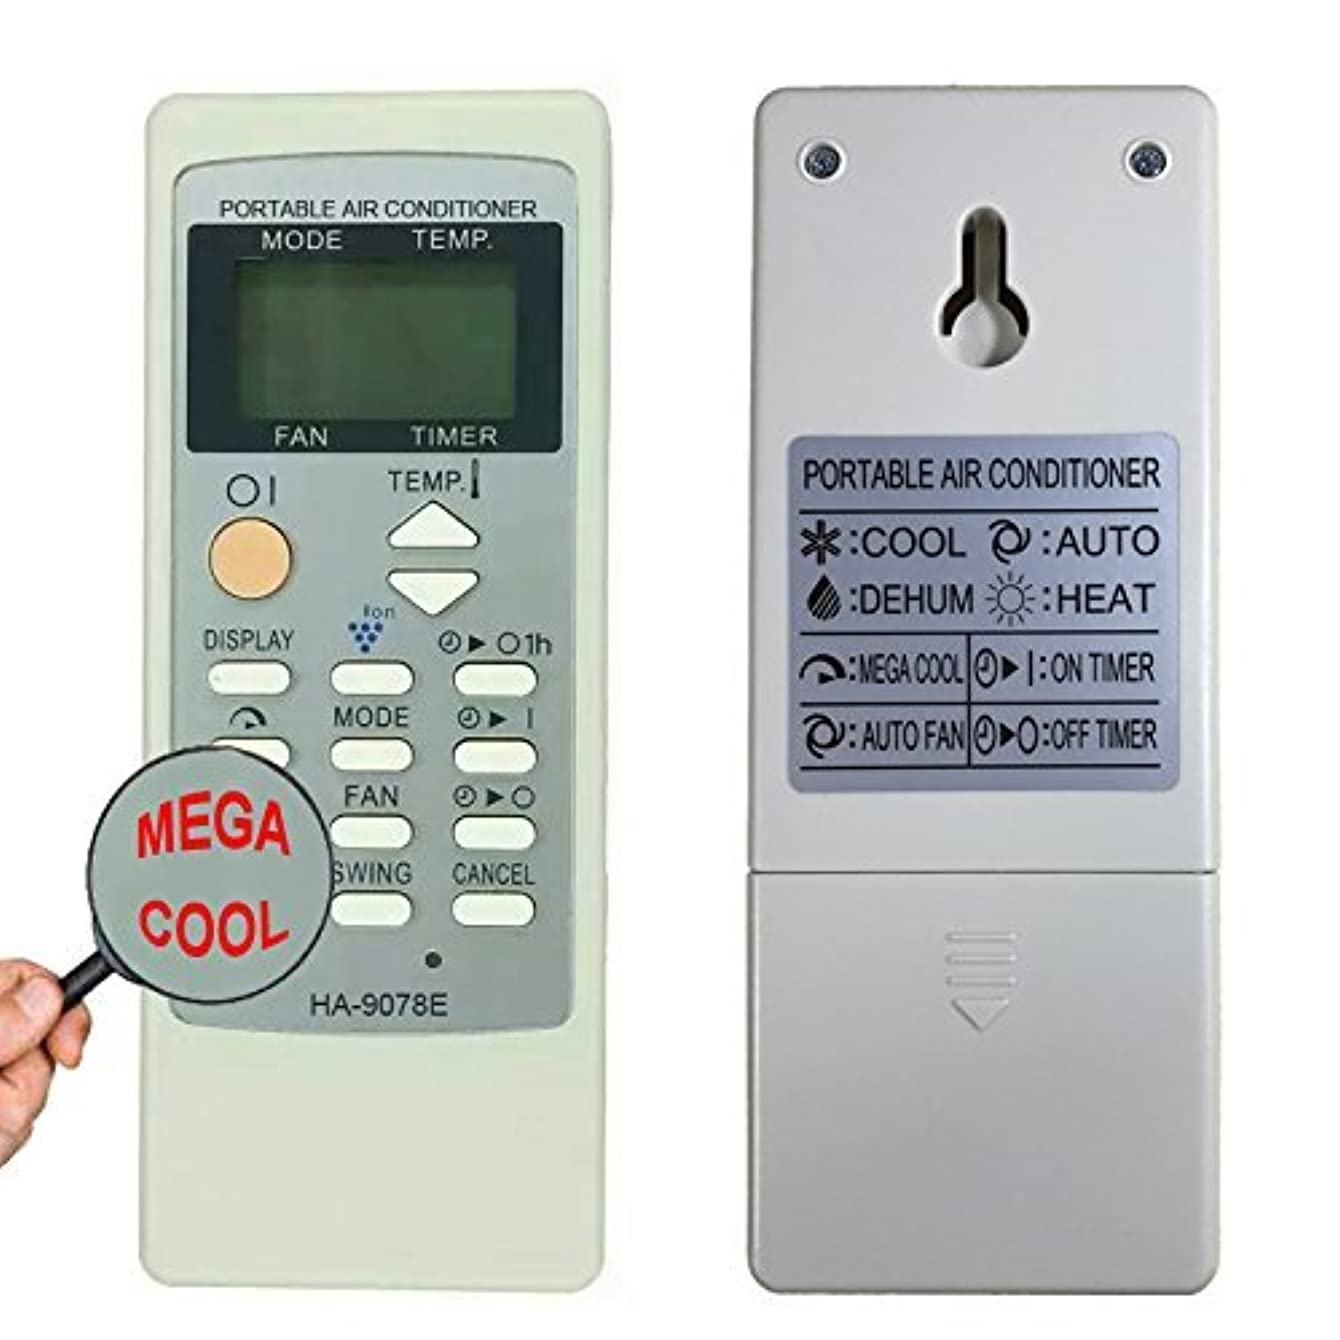 YING RAY Replacement for Sharp Air Conditioner Remote Control for Model cv-10mh